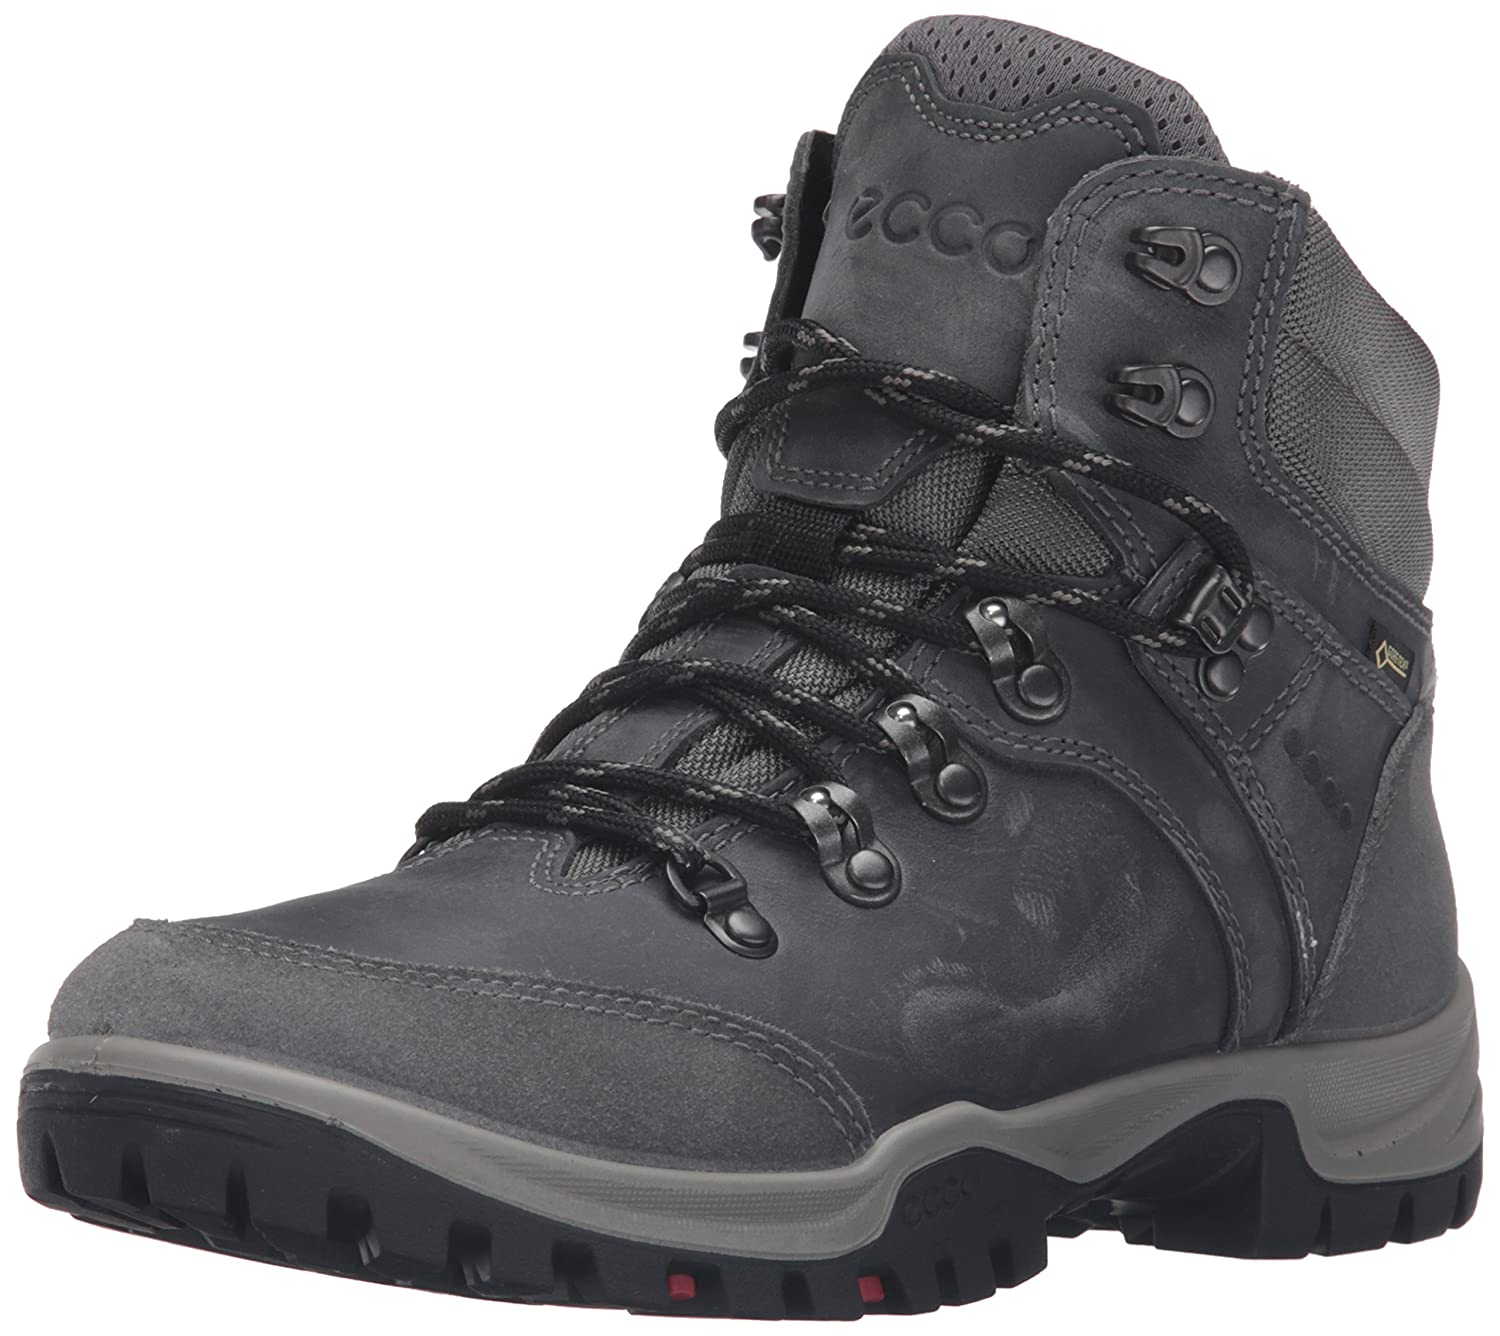 ECCO Women's Xpedition III Gore-Tex Hiking Boot B0163G91BI 39 EU/8-8.5 M US|Titanium